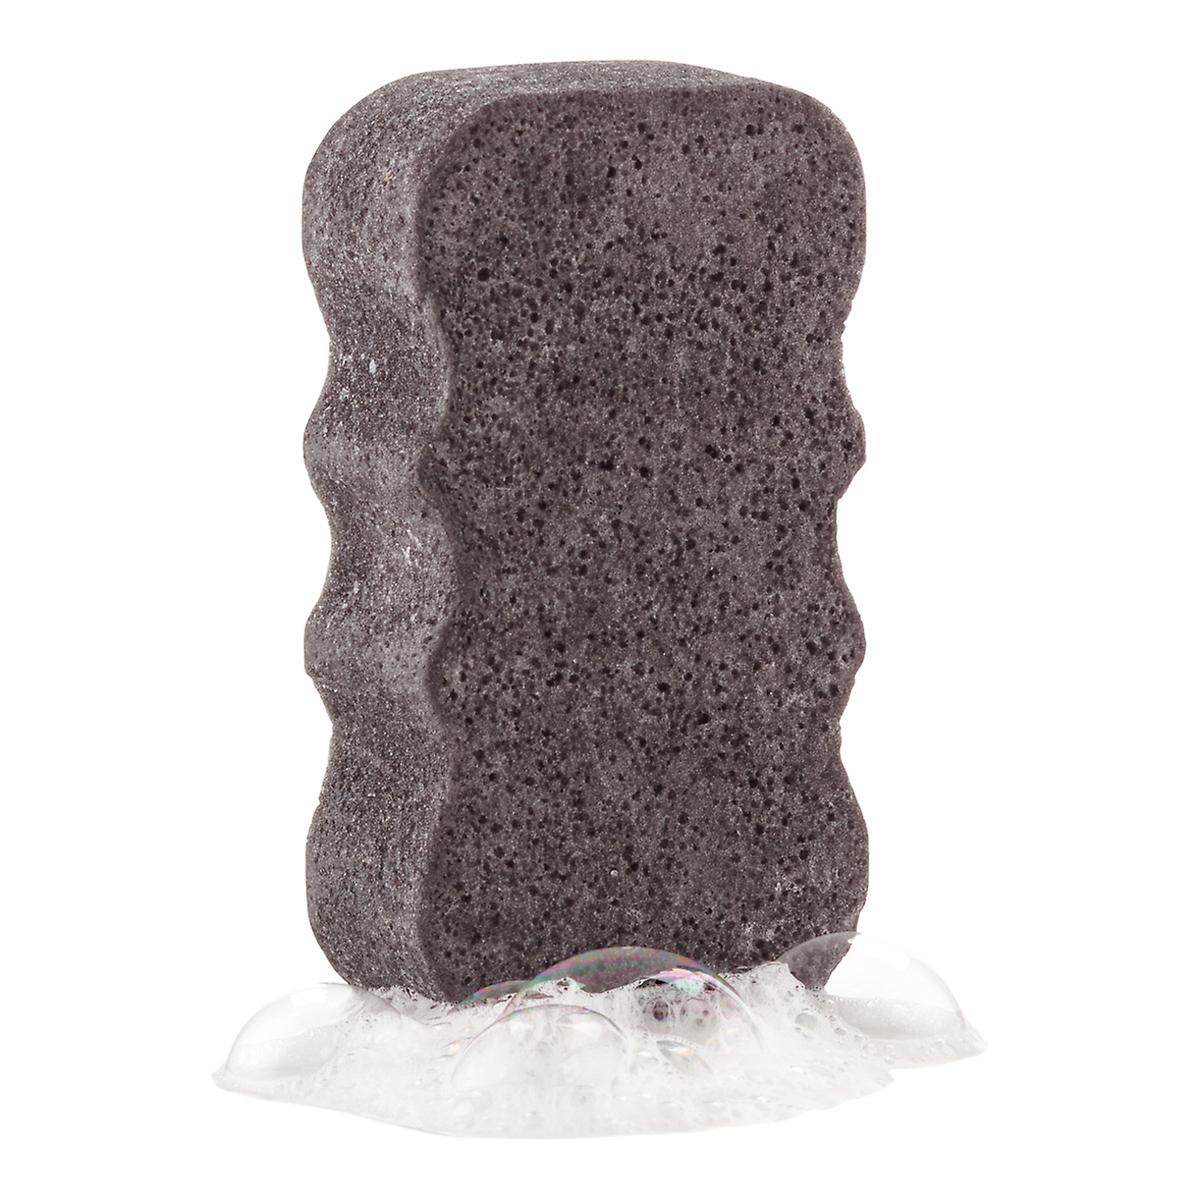 Spongeables Charcoal Body Wash in a Sponge